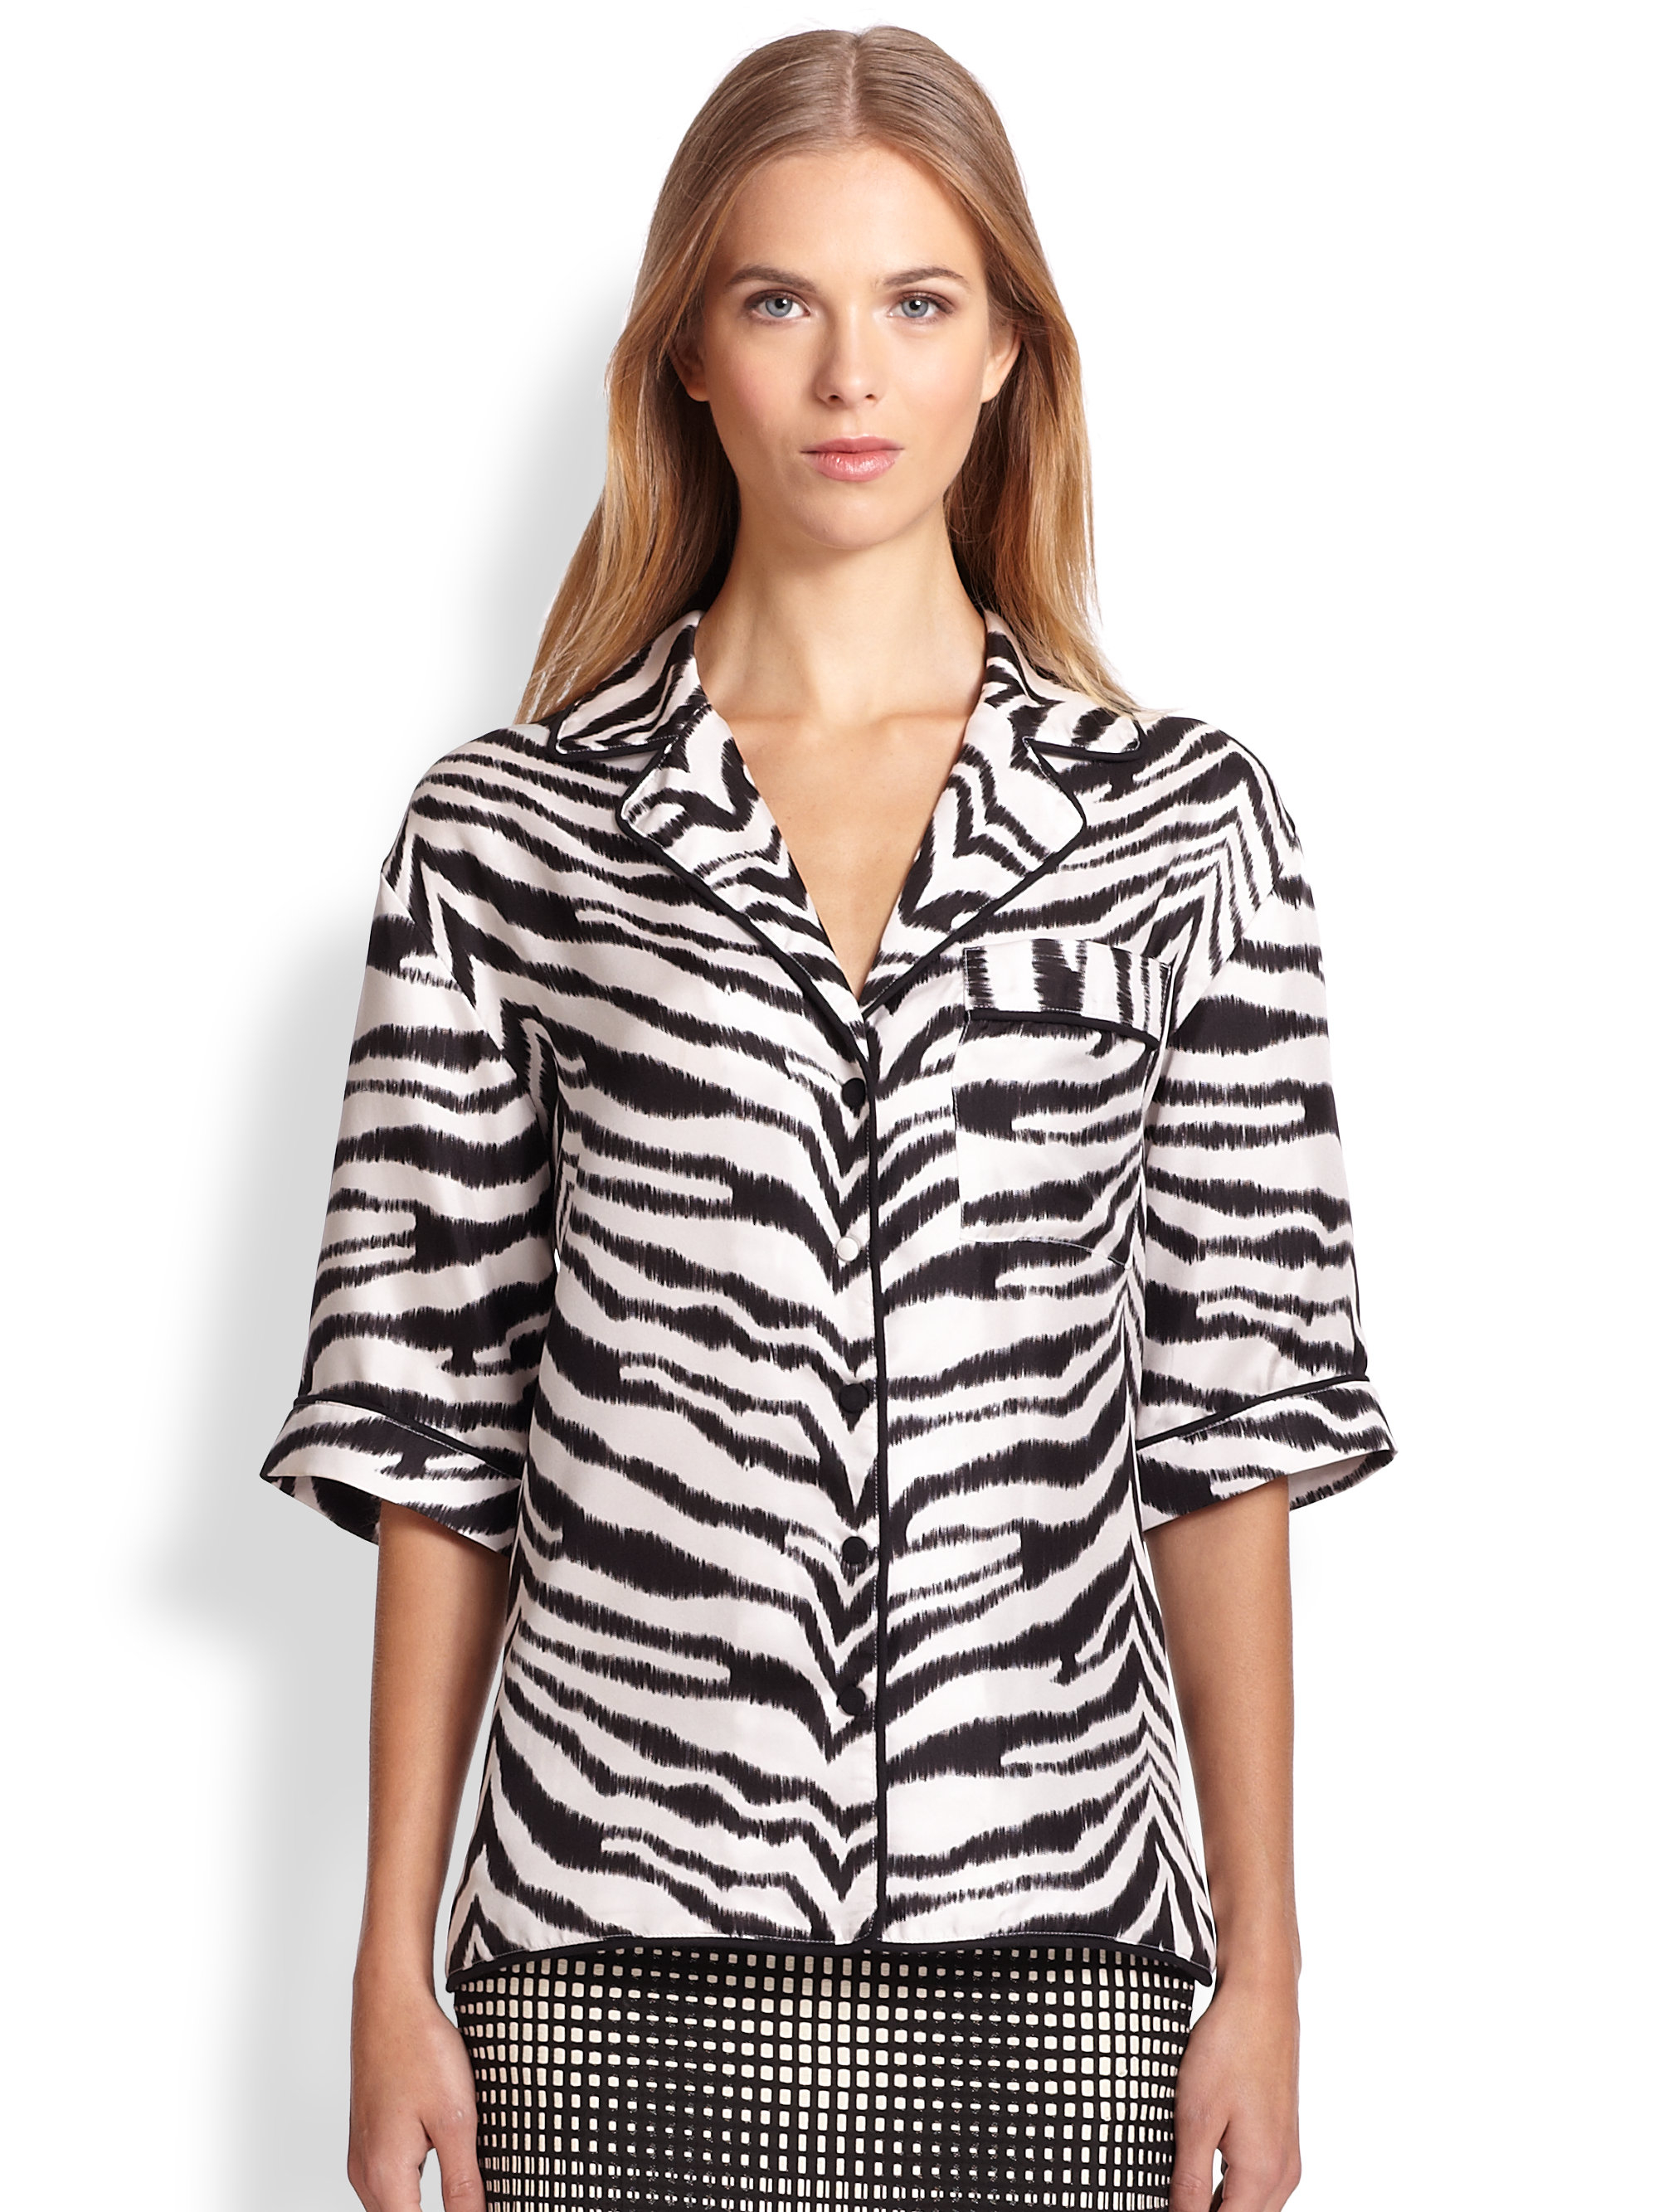 Shop for womens zebra print tops online at Target. Free shipping on purchases over $35 and save 5% every day with your Target REDcard.